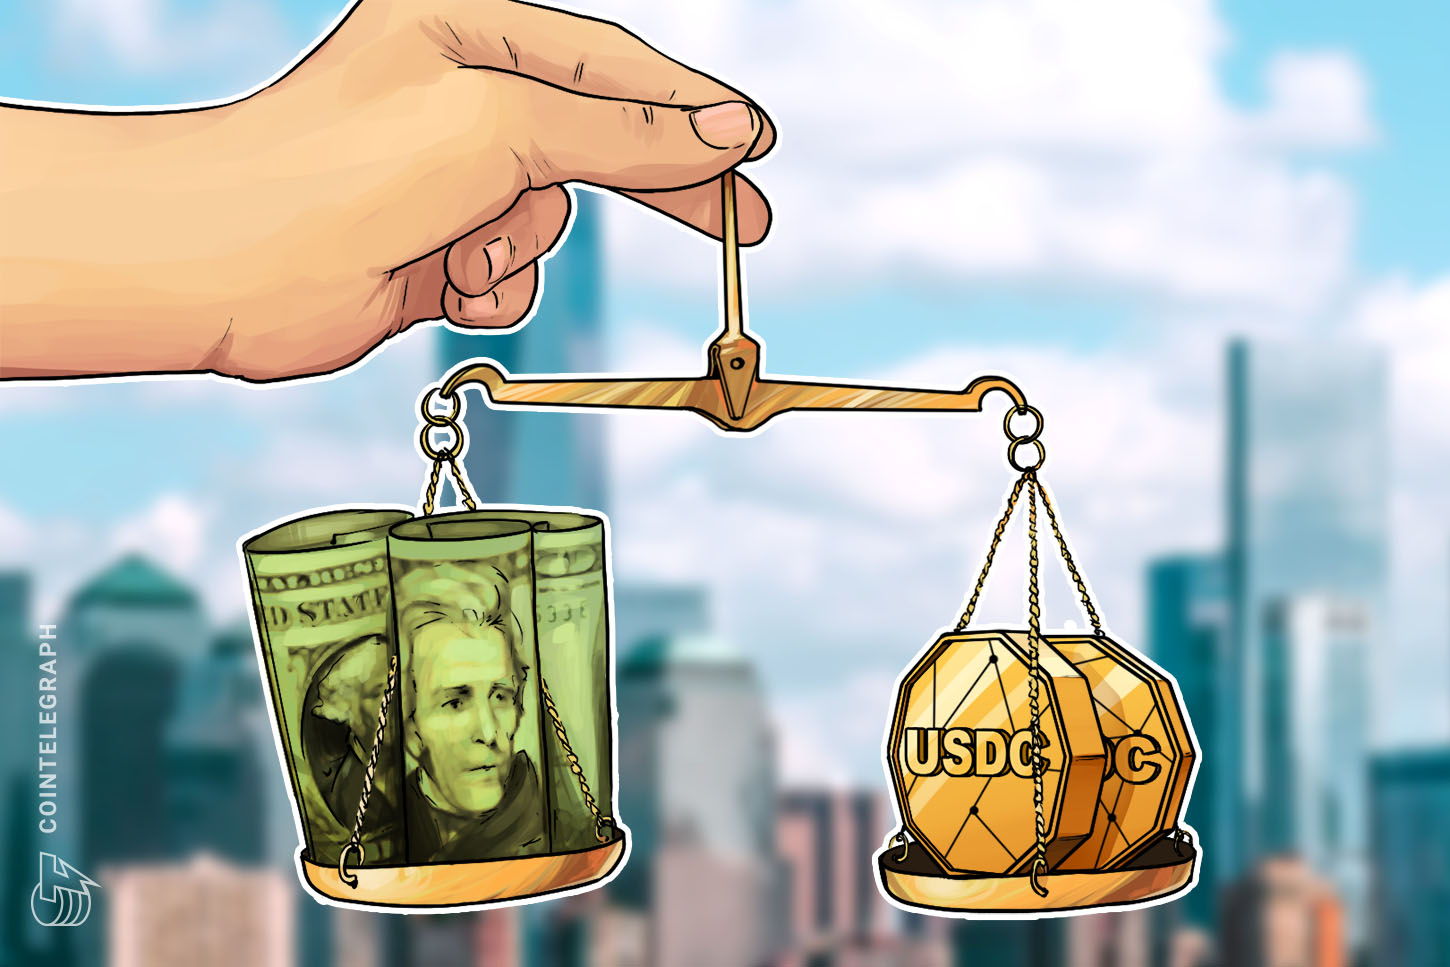 Crypto derivatives exchange Bitget to list USDC as collateral for margin trading